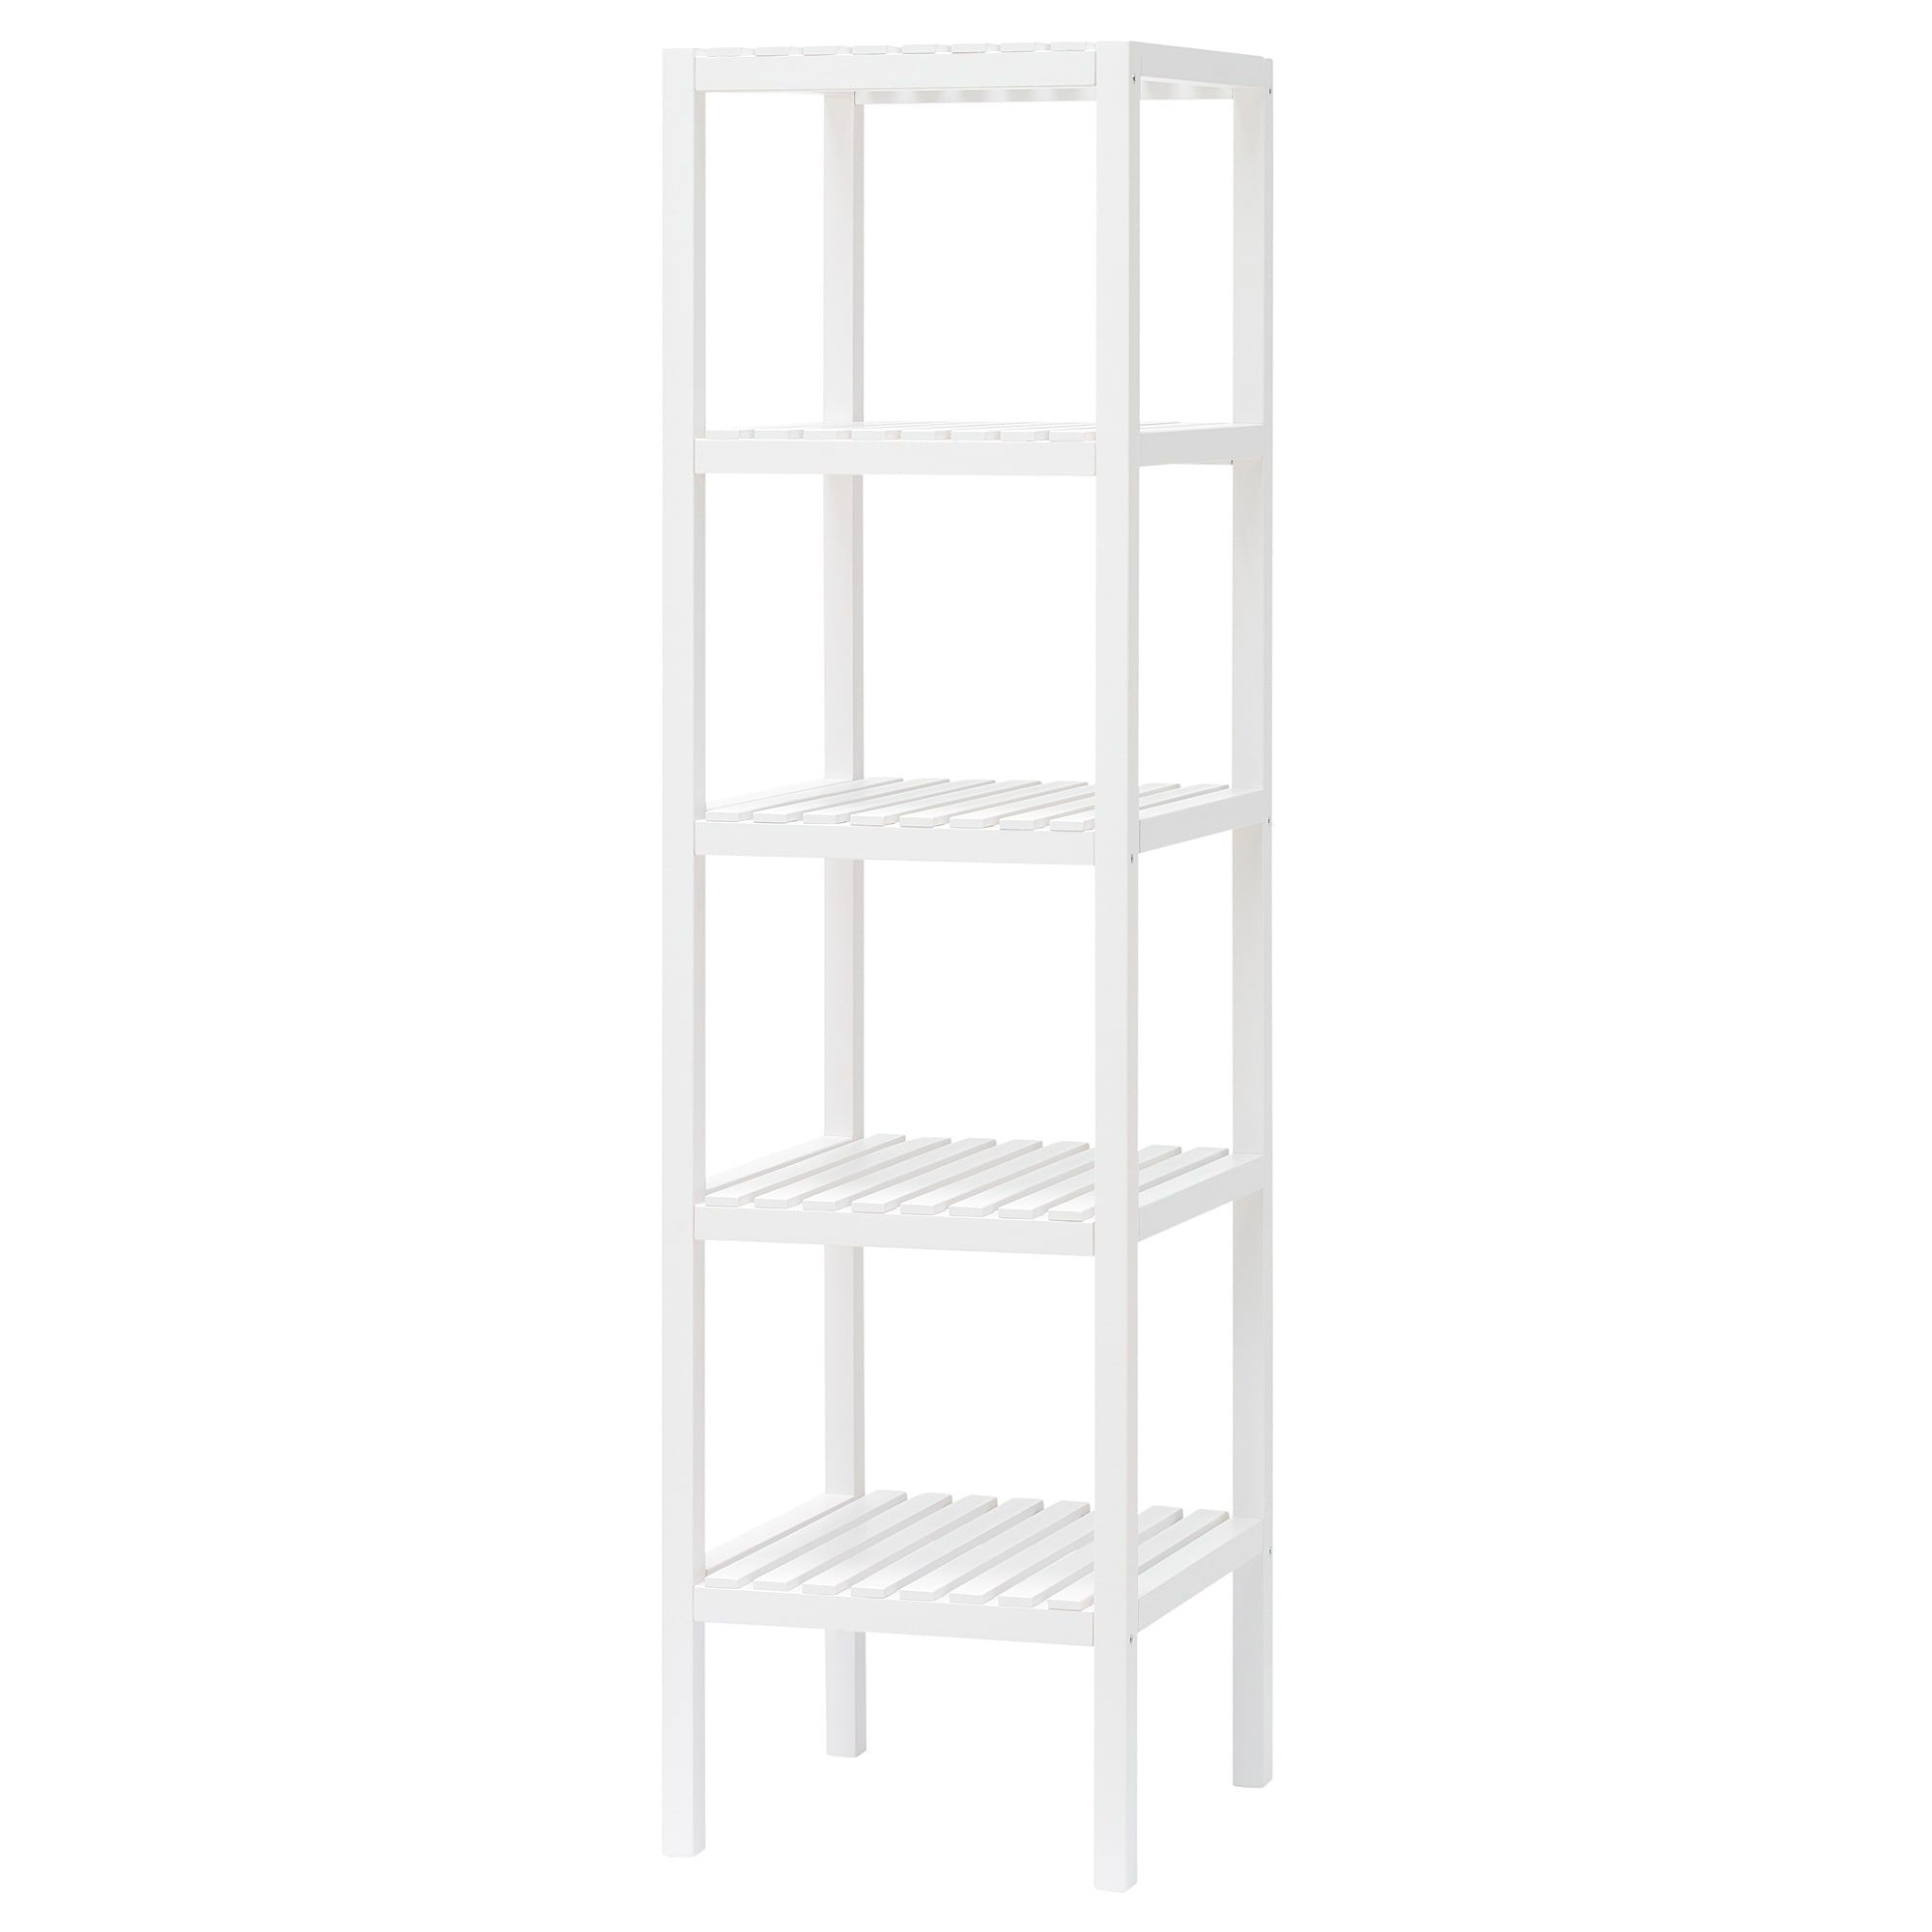 Muskan White Shelving Unit Ikea Regal Weiss Regal Badezimmer Regal Weiss